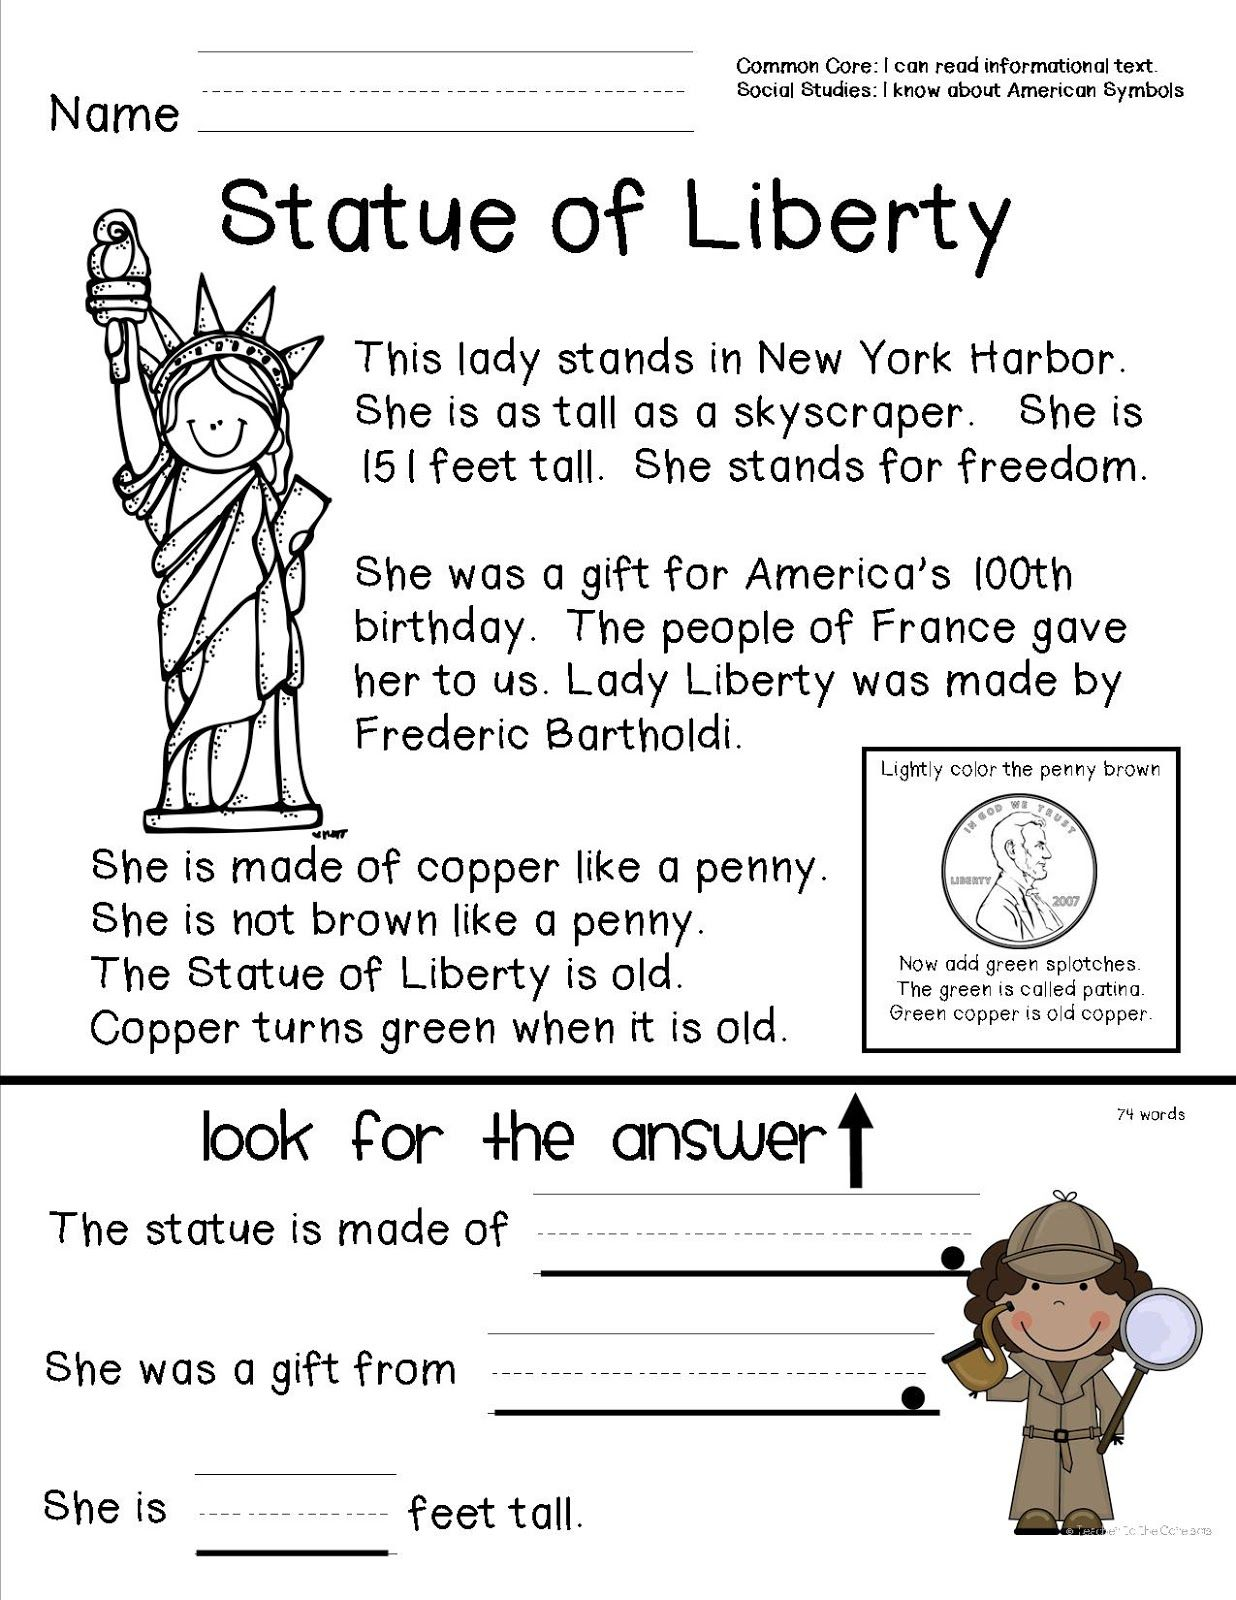 worksheet 2nd Grade History Worksheets second grade math worksheets my neighborhood map maps reading comprehension sheet about the statue of liberty for primary grades